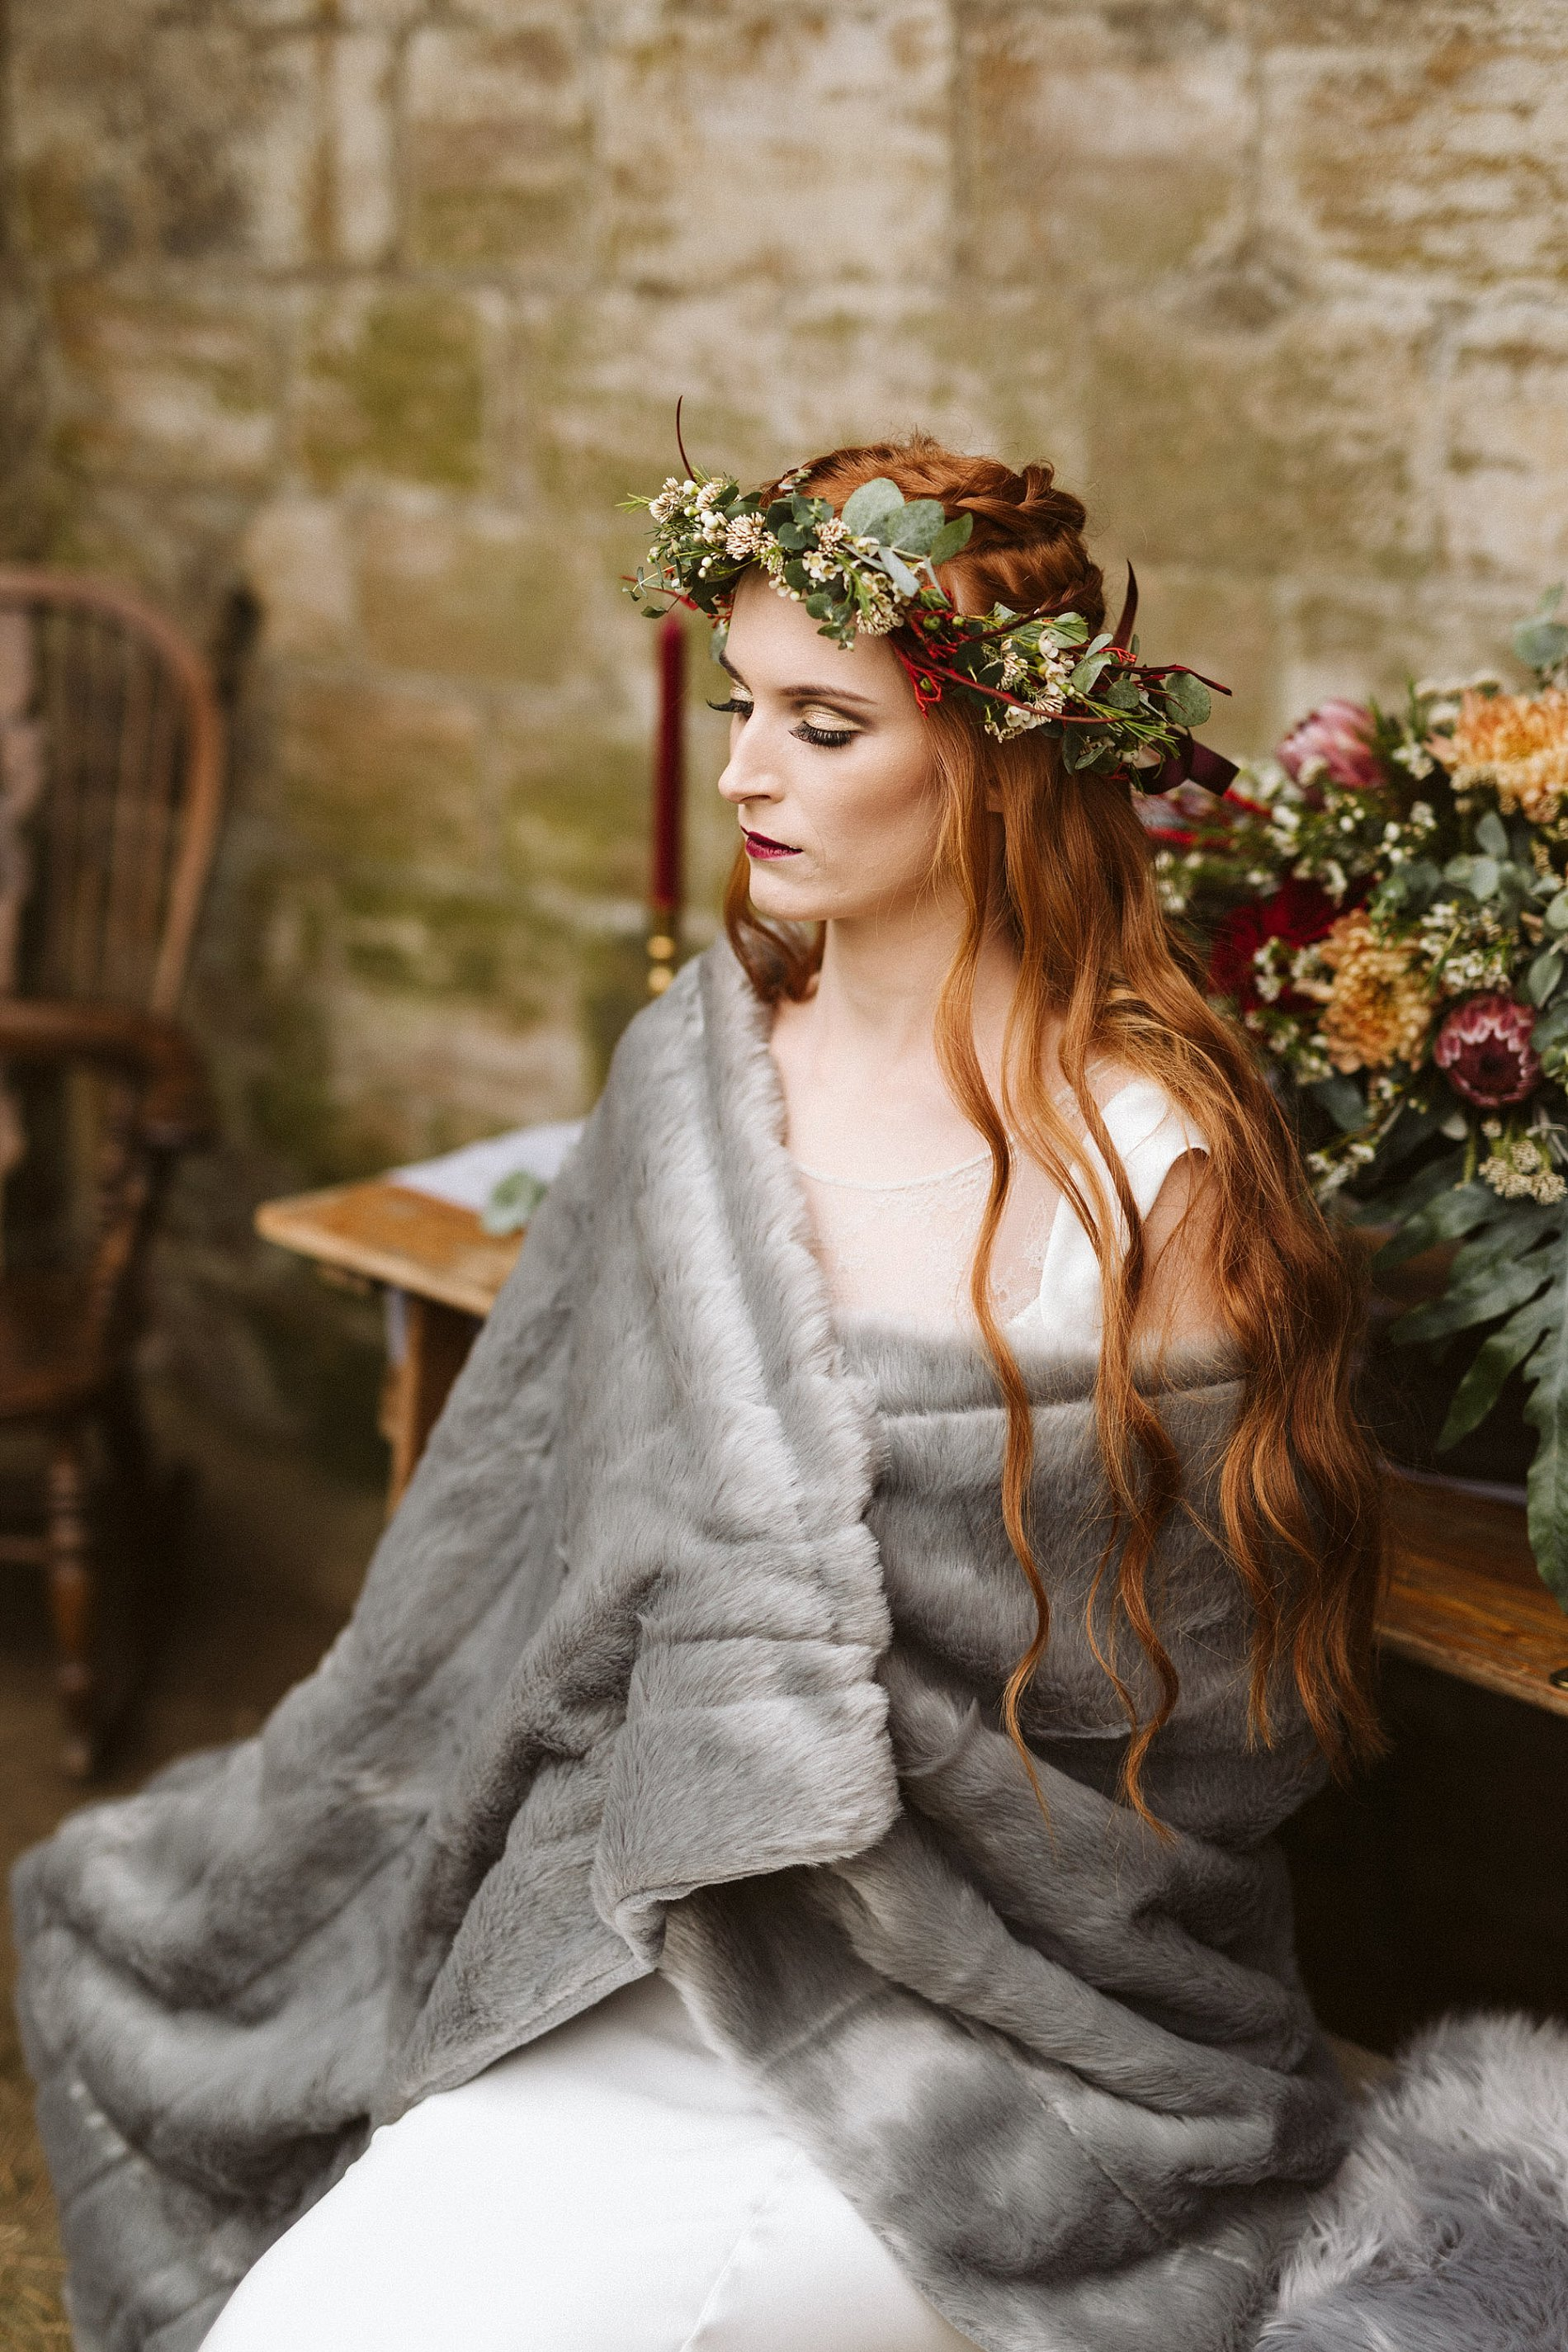 Game of Thrones Creative Bridal Shoot (c) Freya Raby (19)